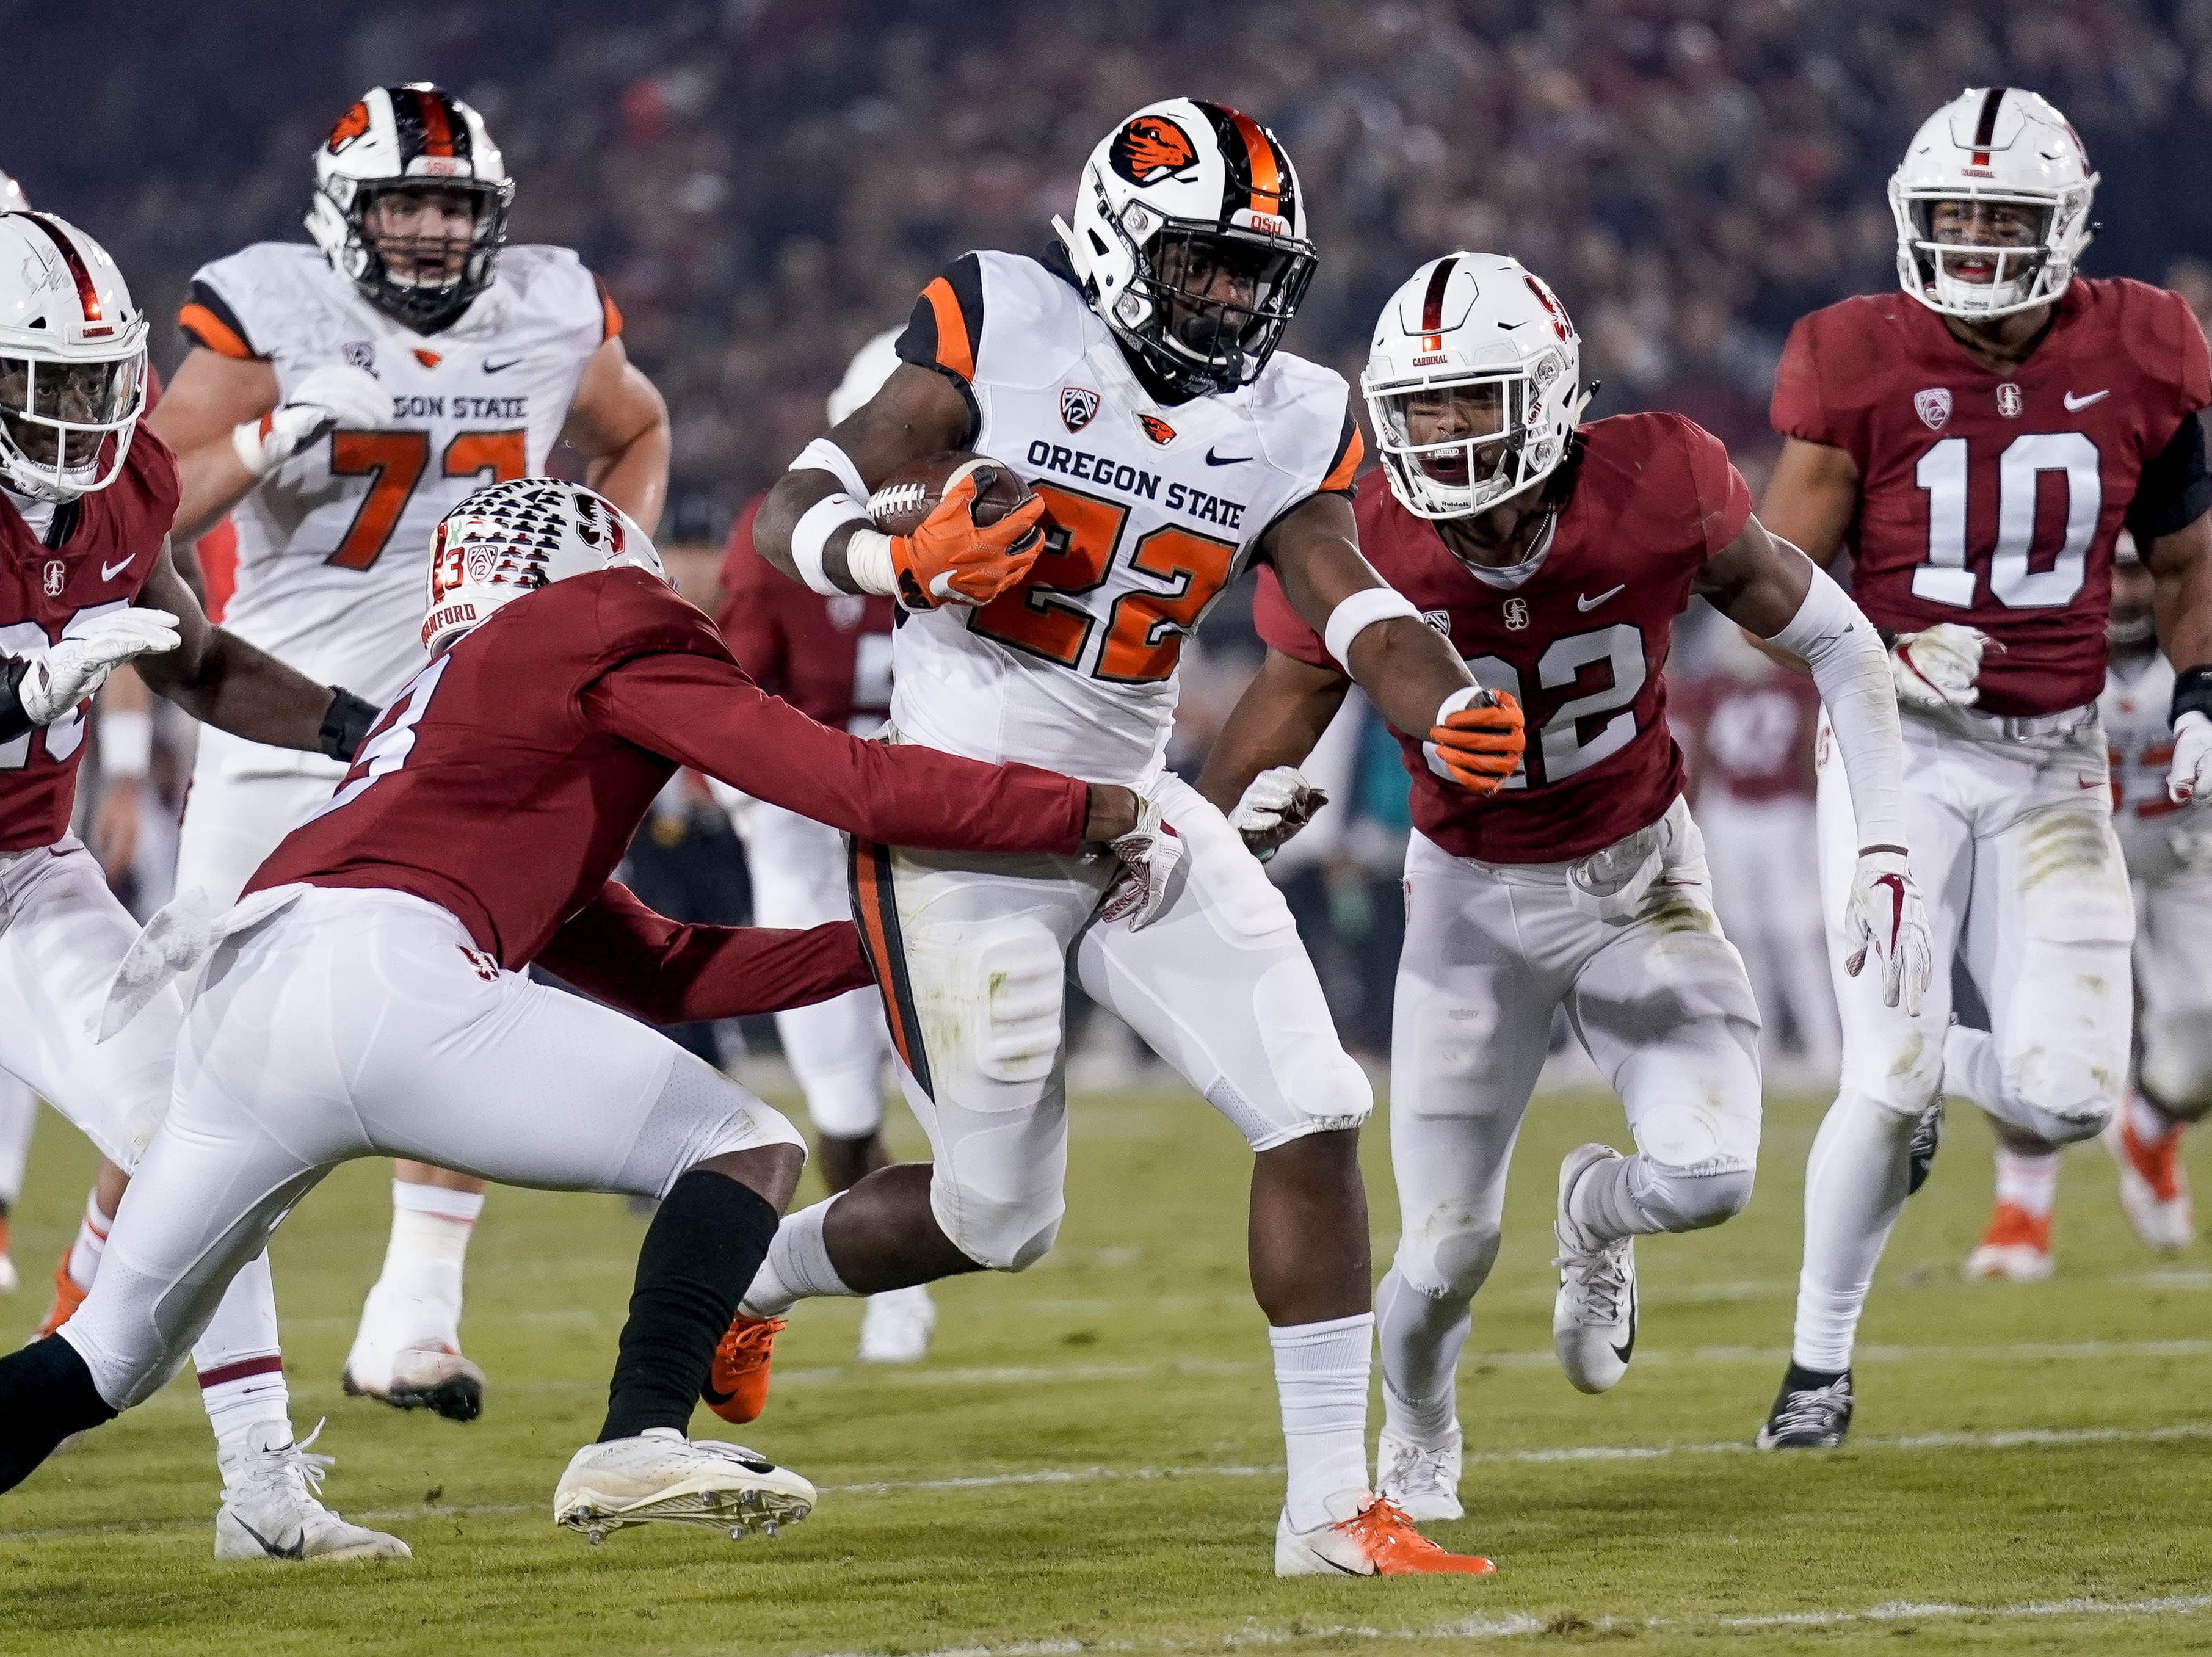 Civil War best chance for another OSU victory